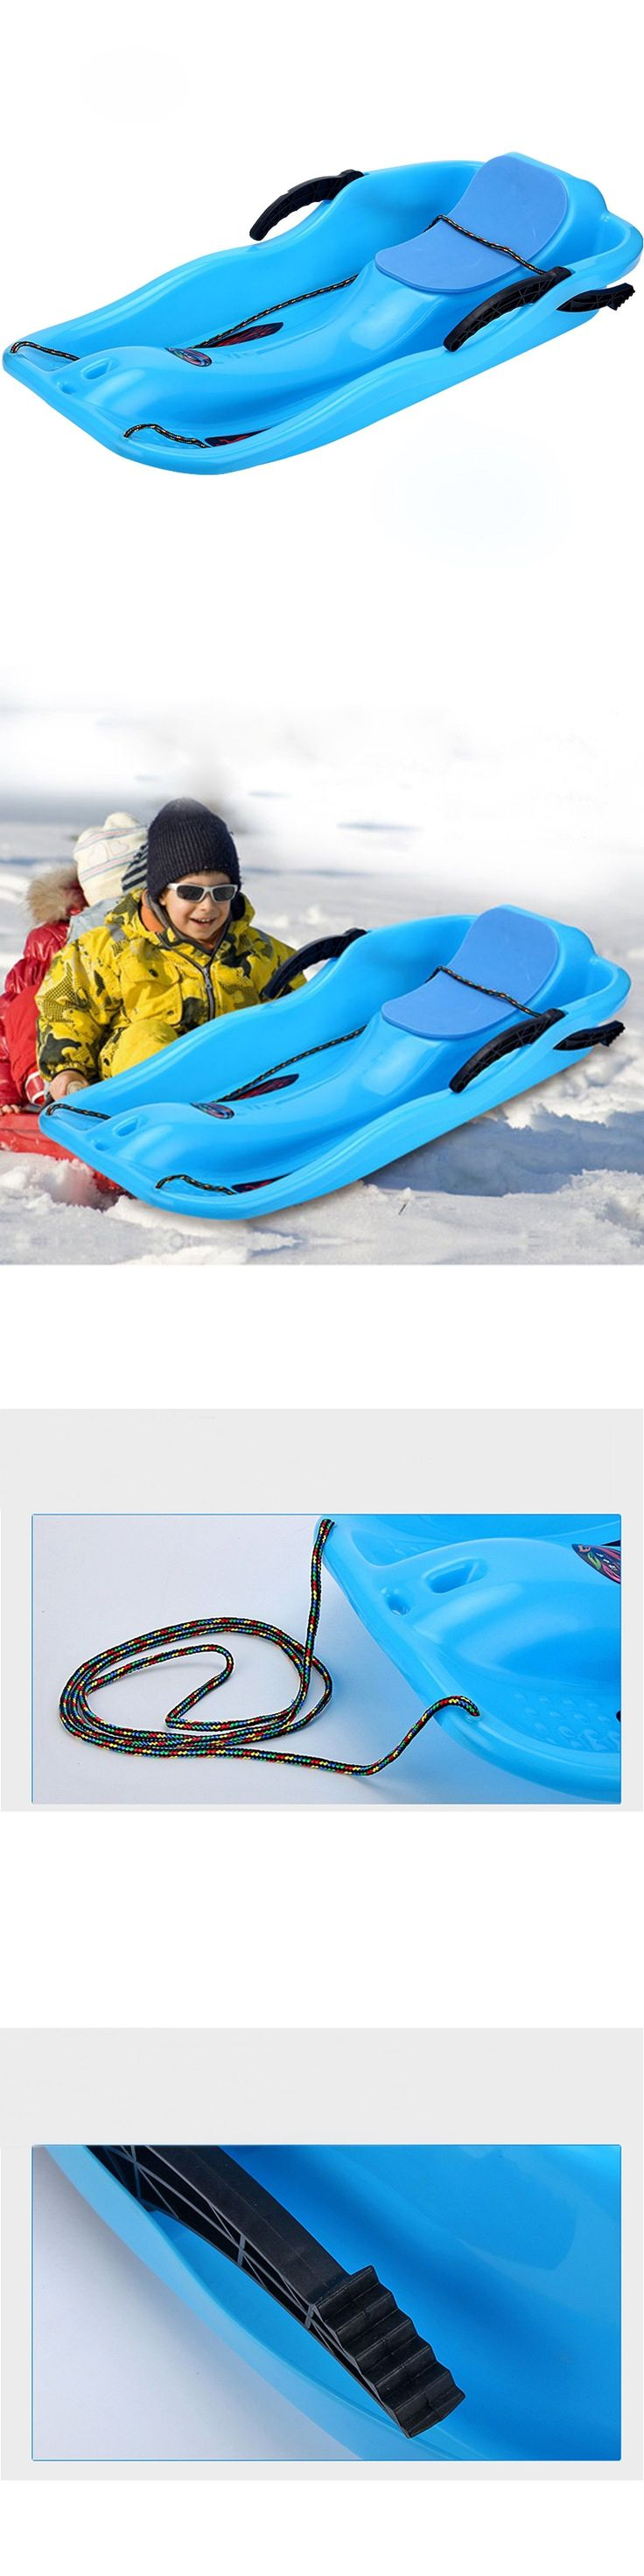 Sleds and Snow Tubes 59892: Snow Sled For Girls Winter Kids Glider E-Joy Boat Sledge Toboggan With Brakes -> BUY IT NOW ONLY: $71.47 on eBay!